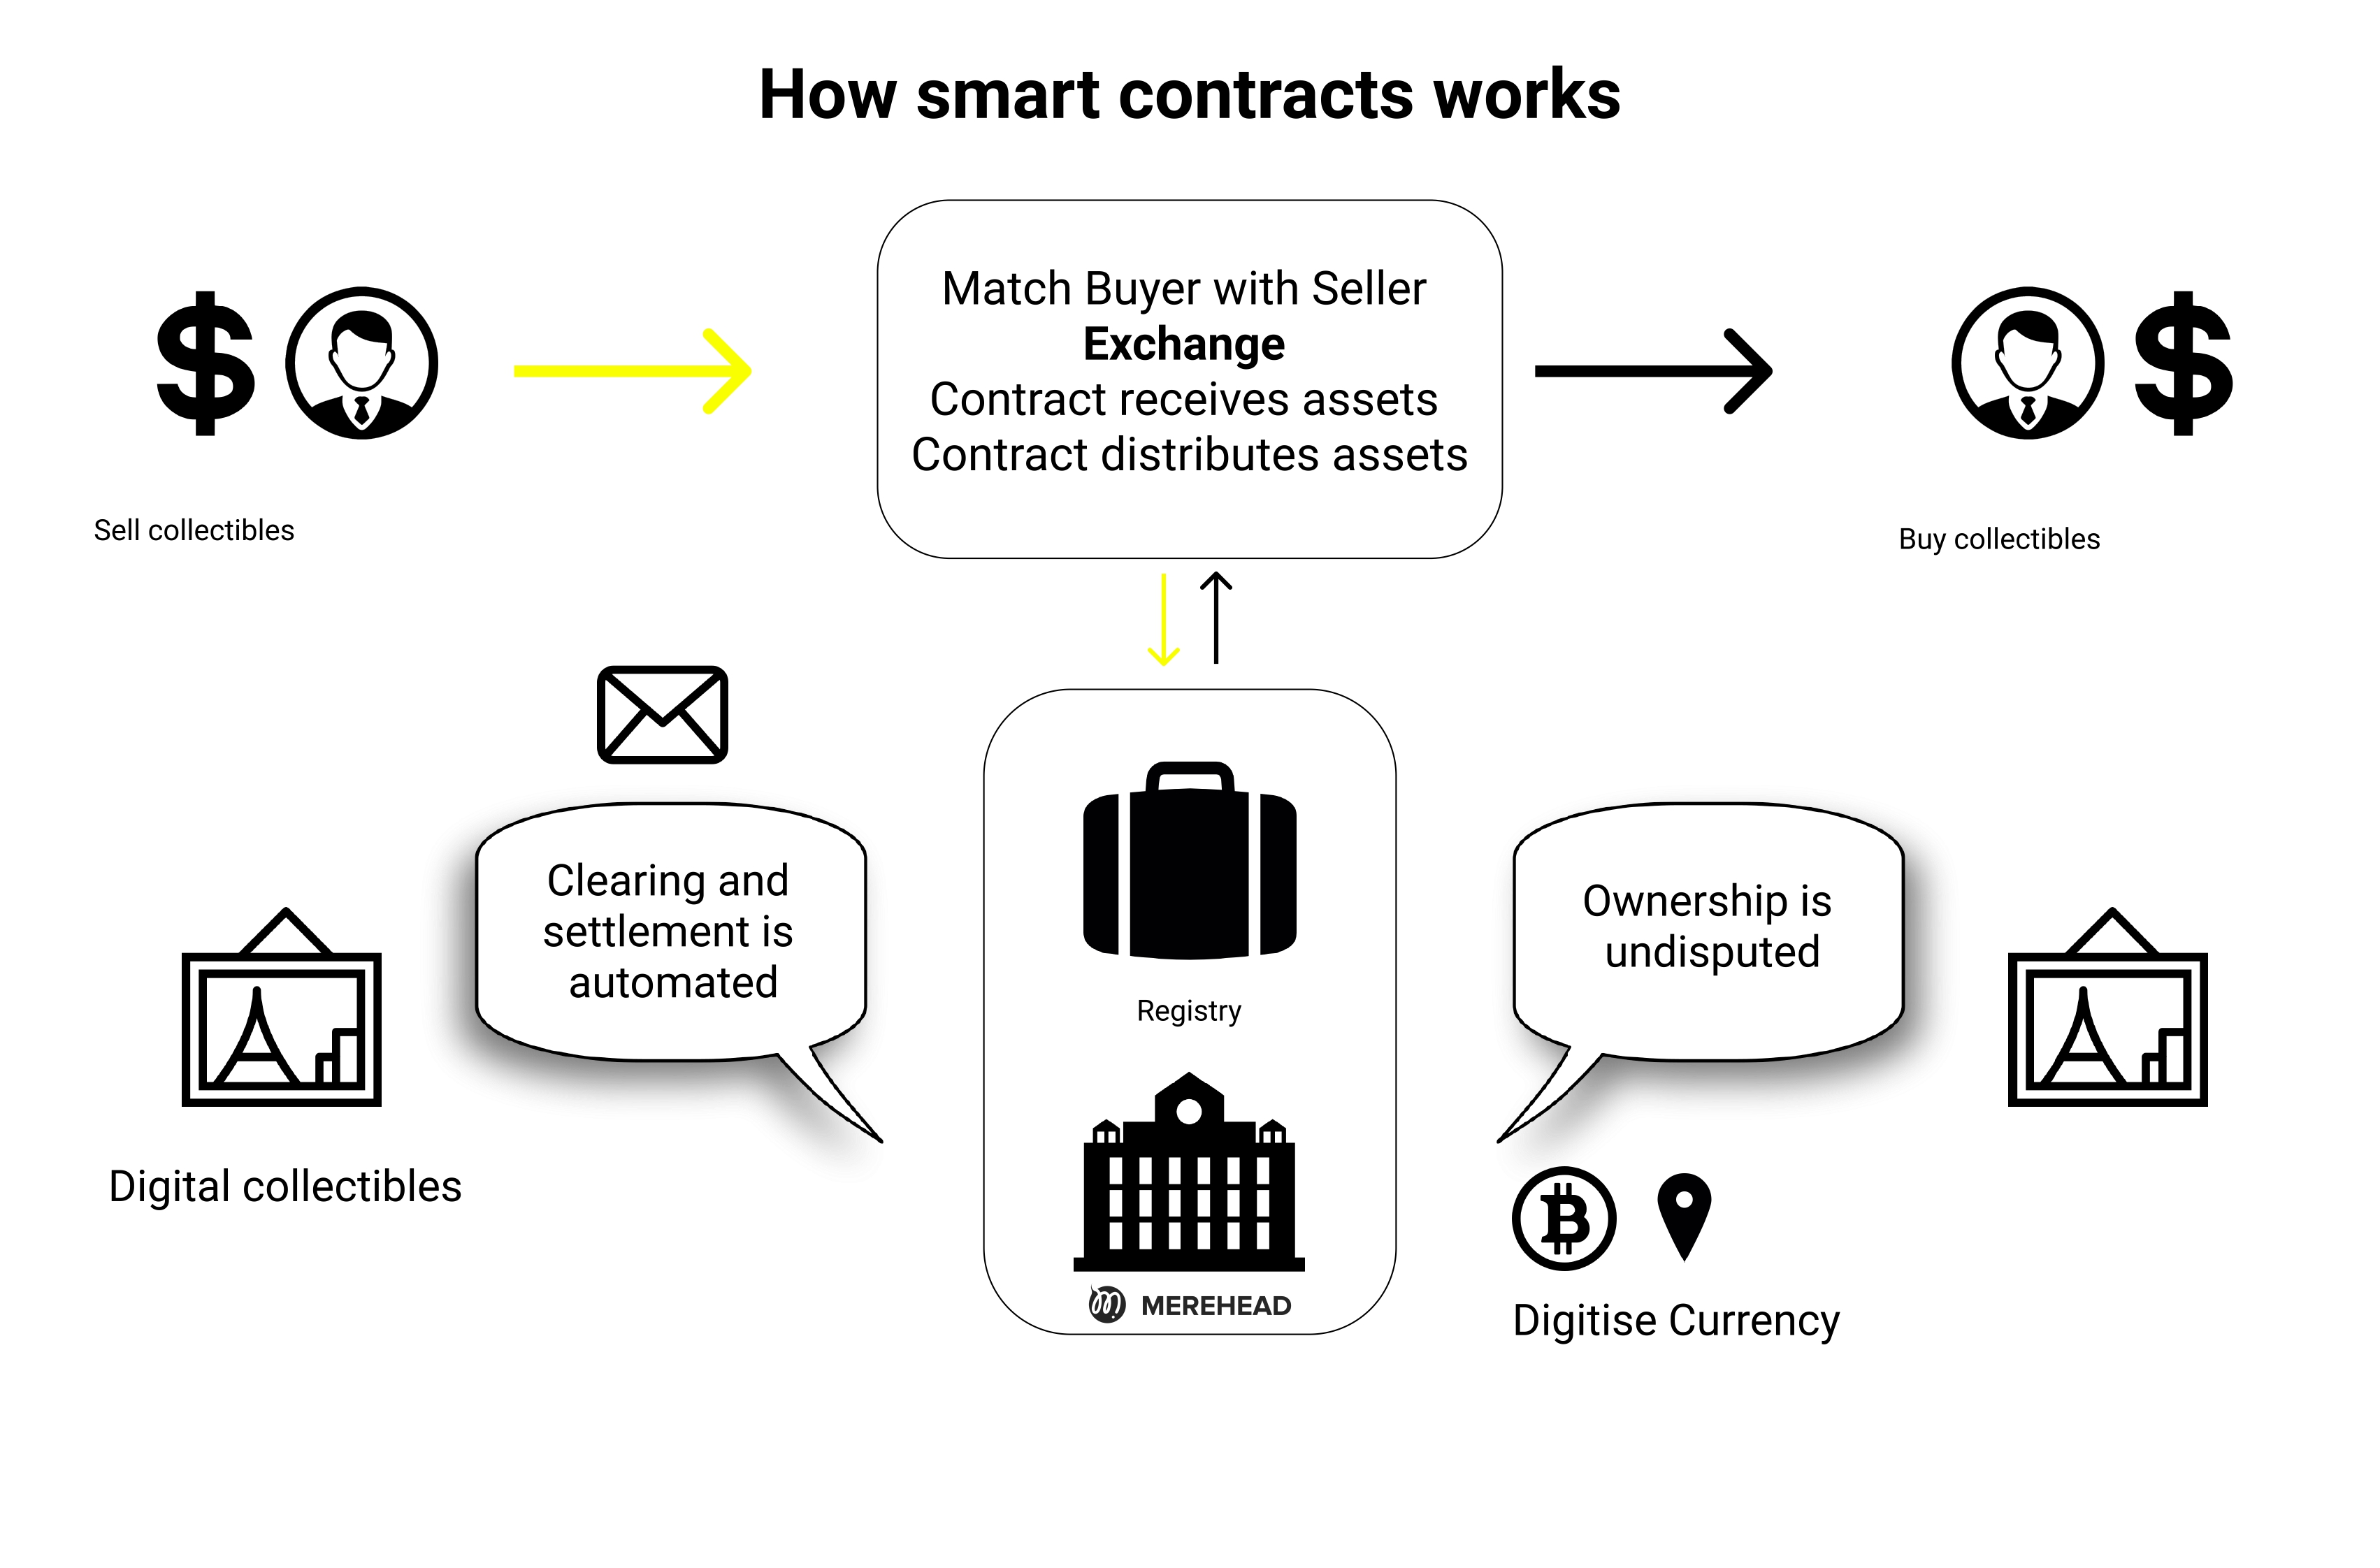 How do work the NFT marketplace smart contracts